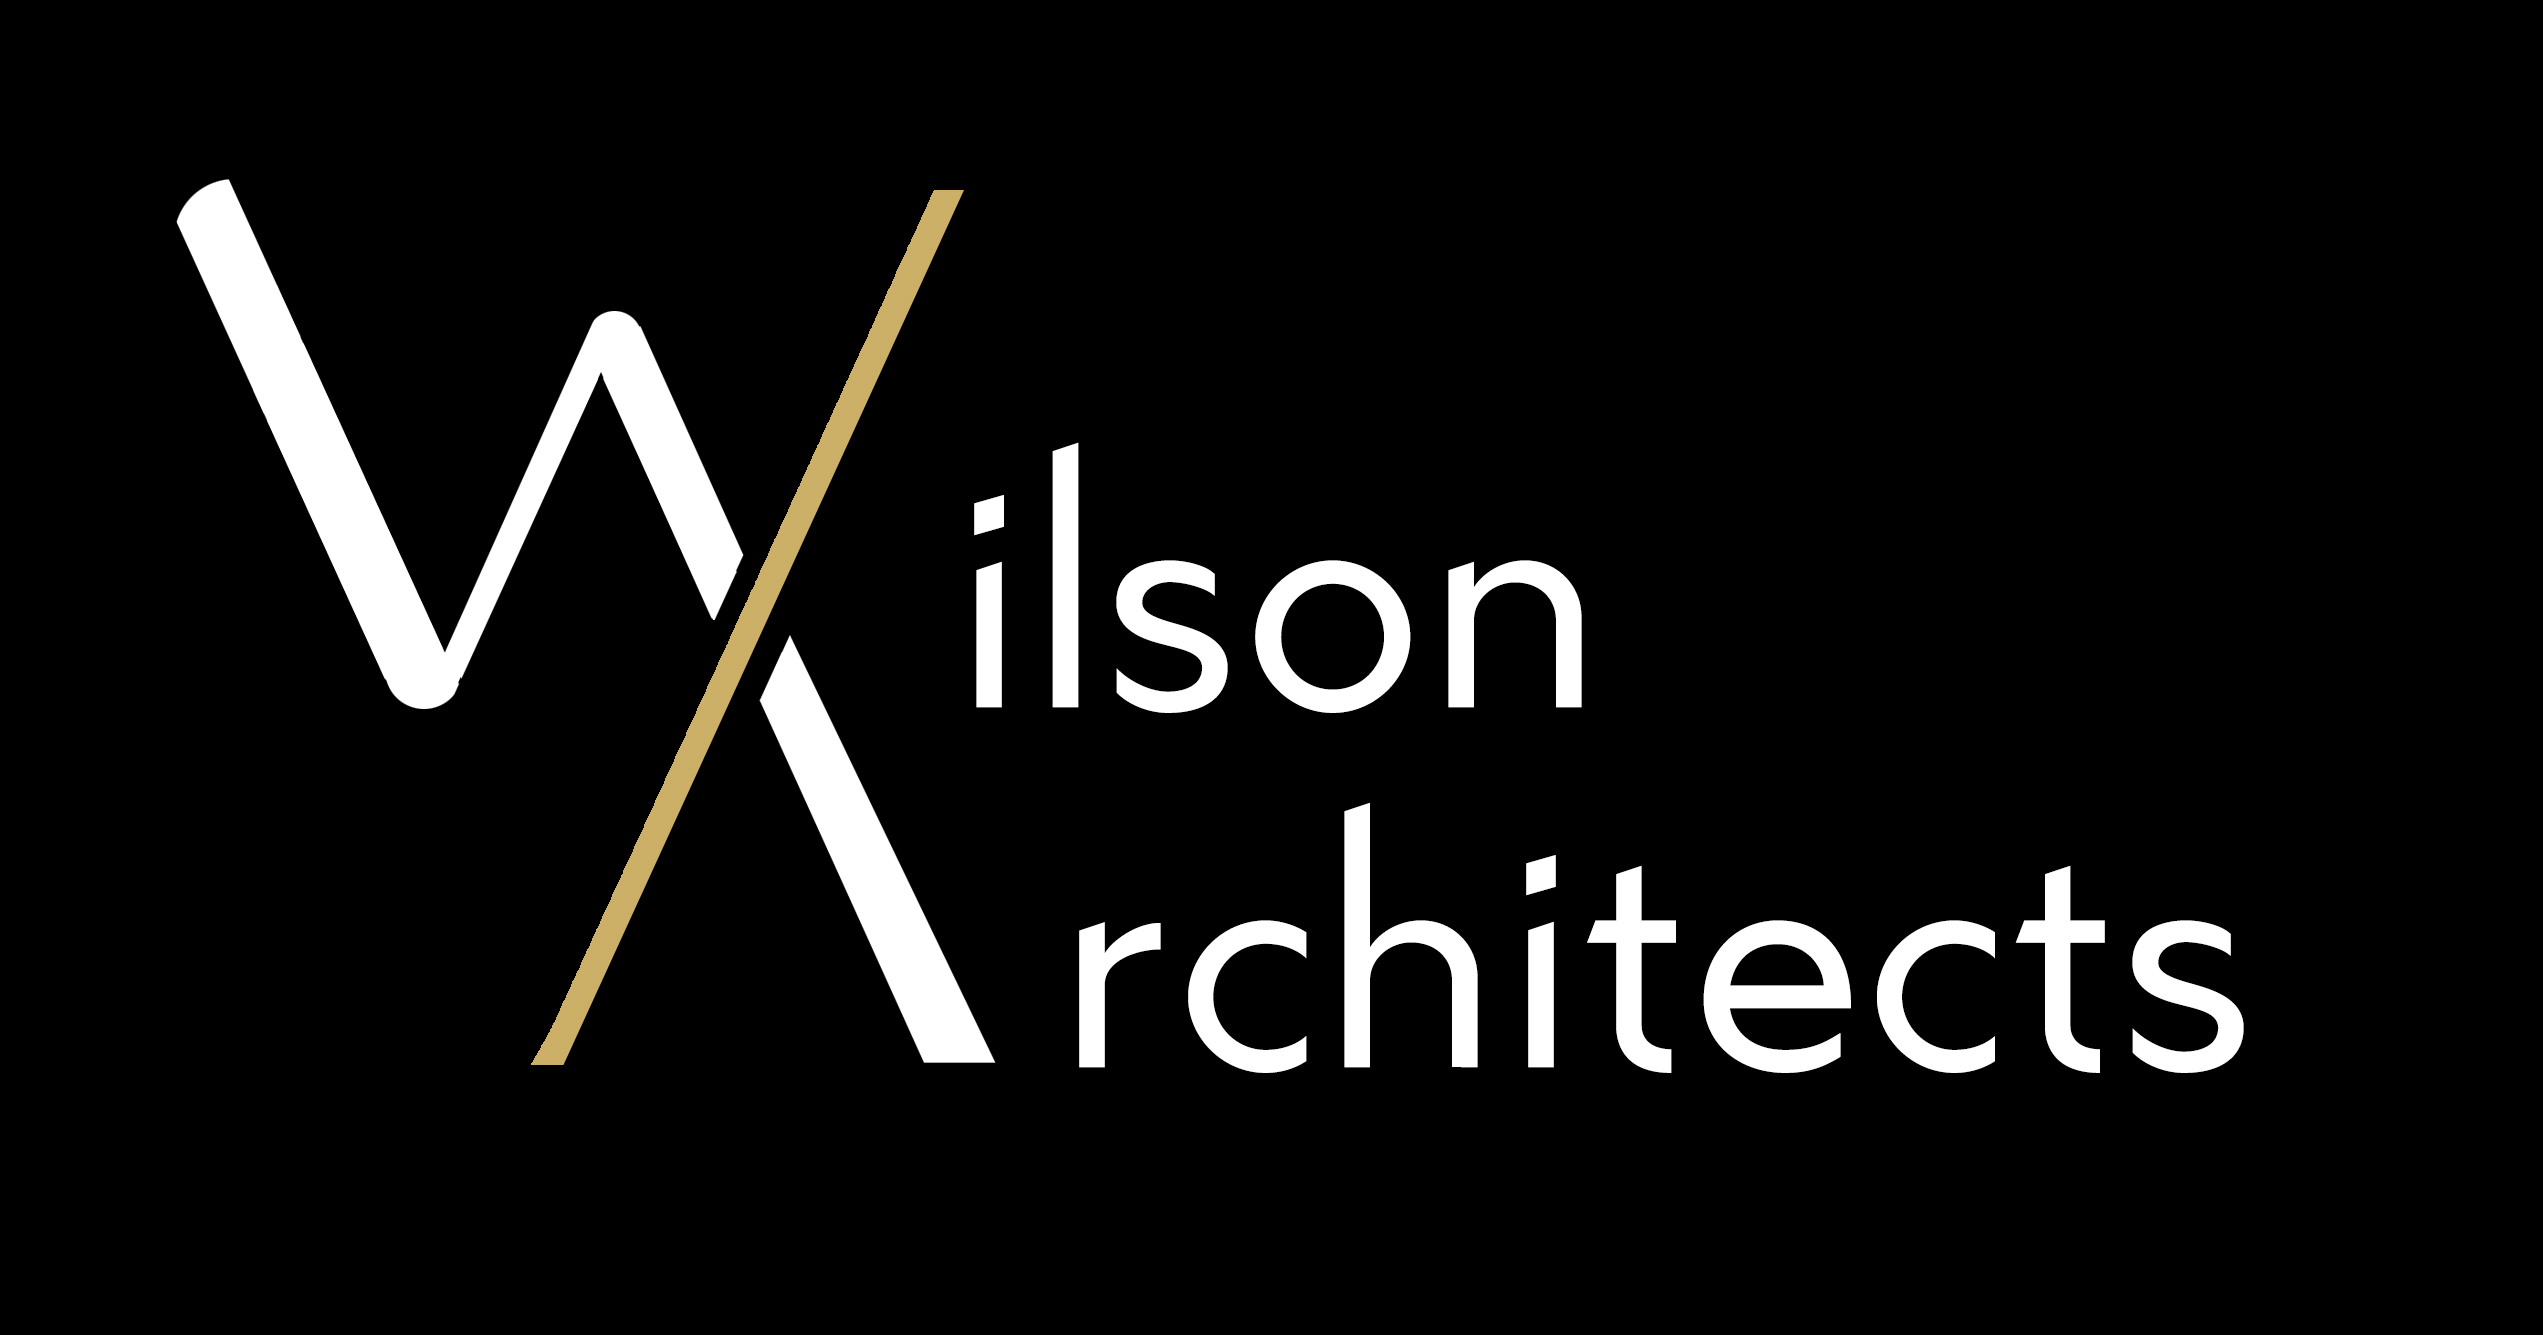 wilson-architects_logo